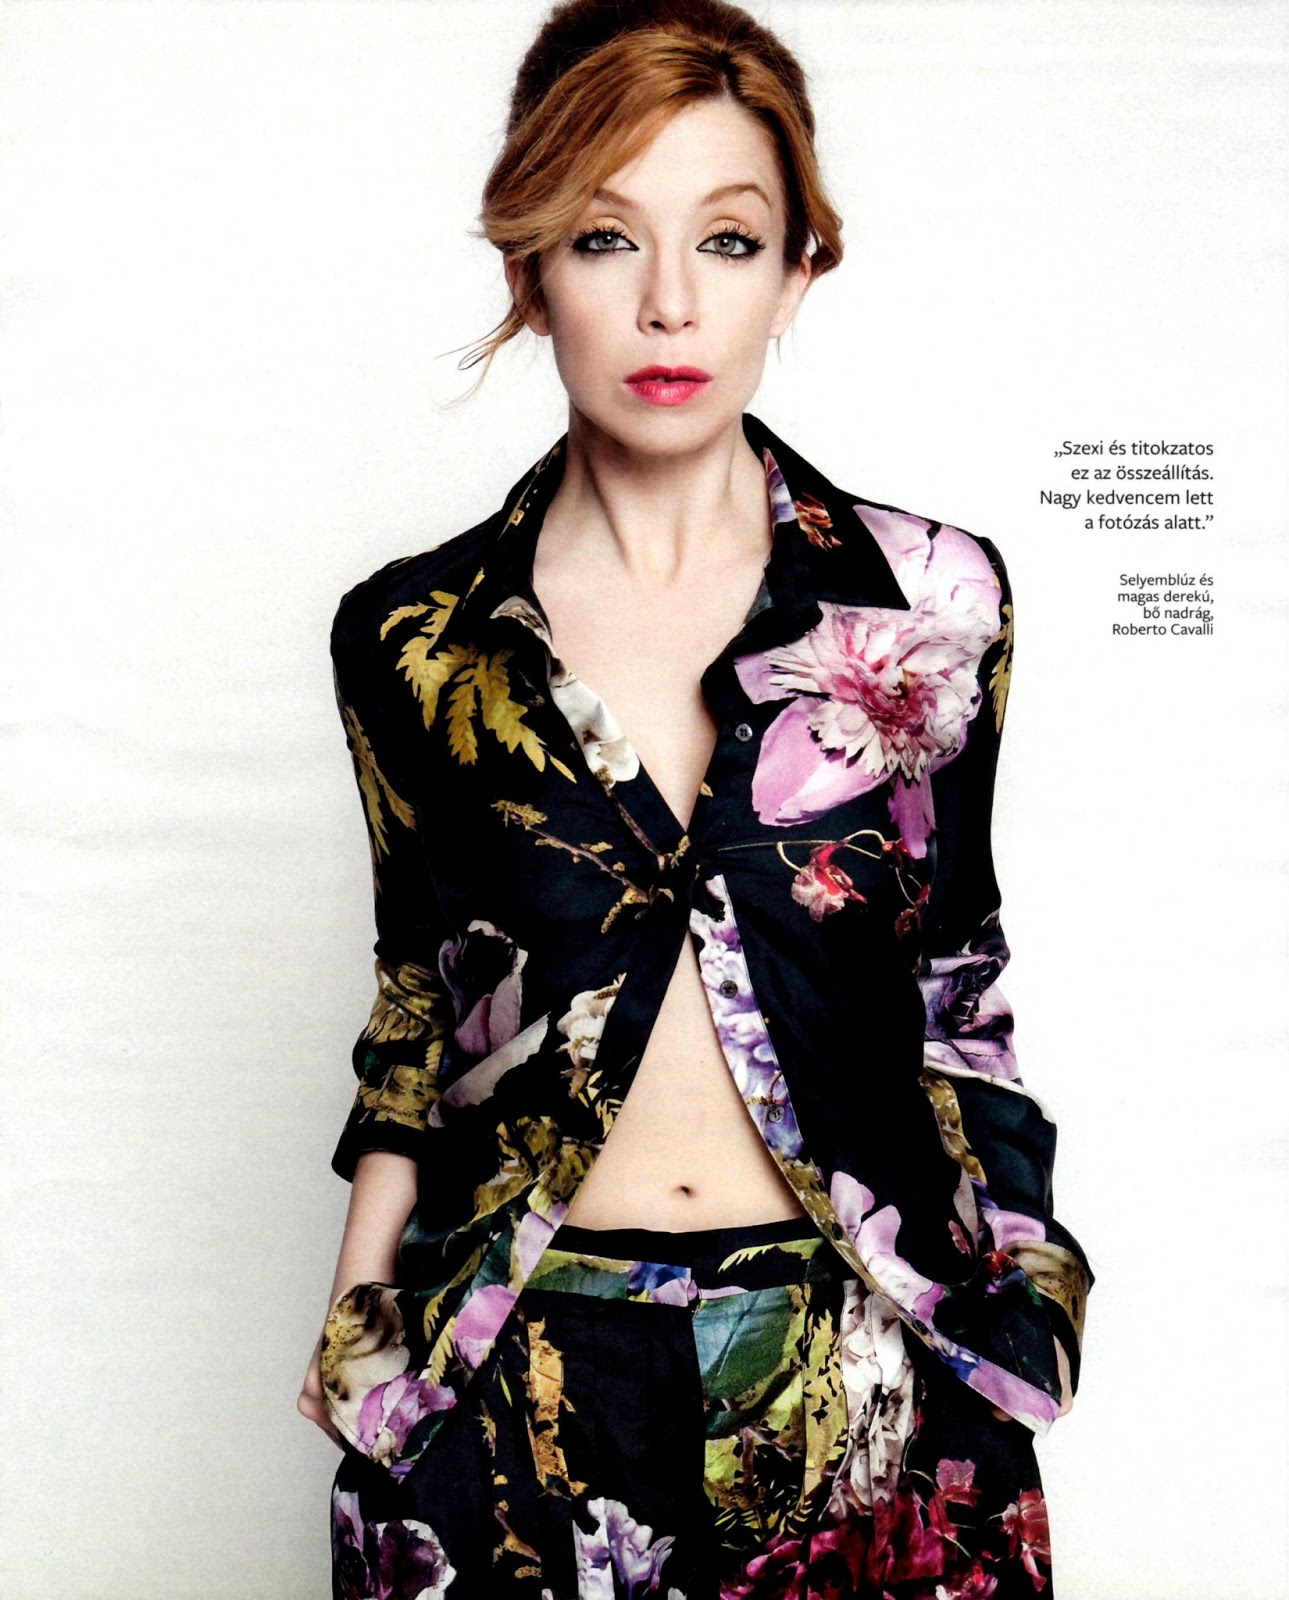 Kovacs Patricia @ InStyle, Hungary, March 2013